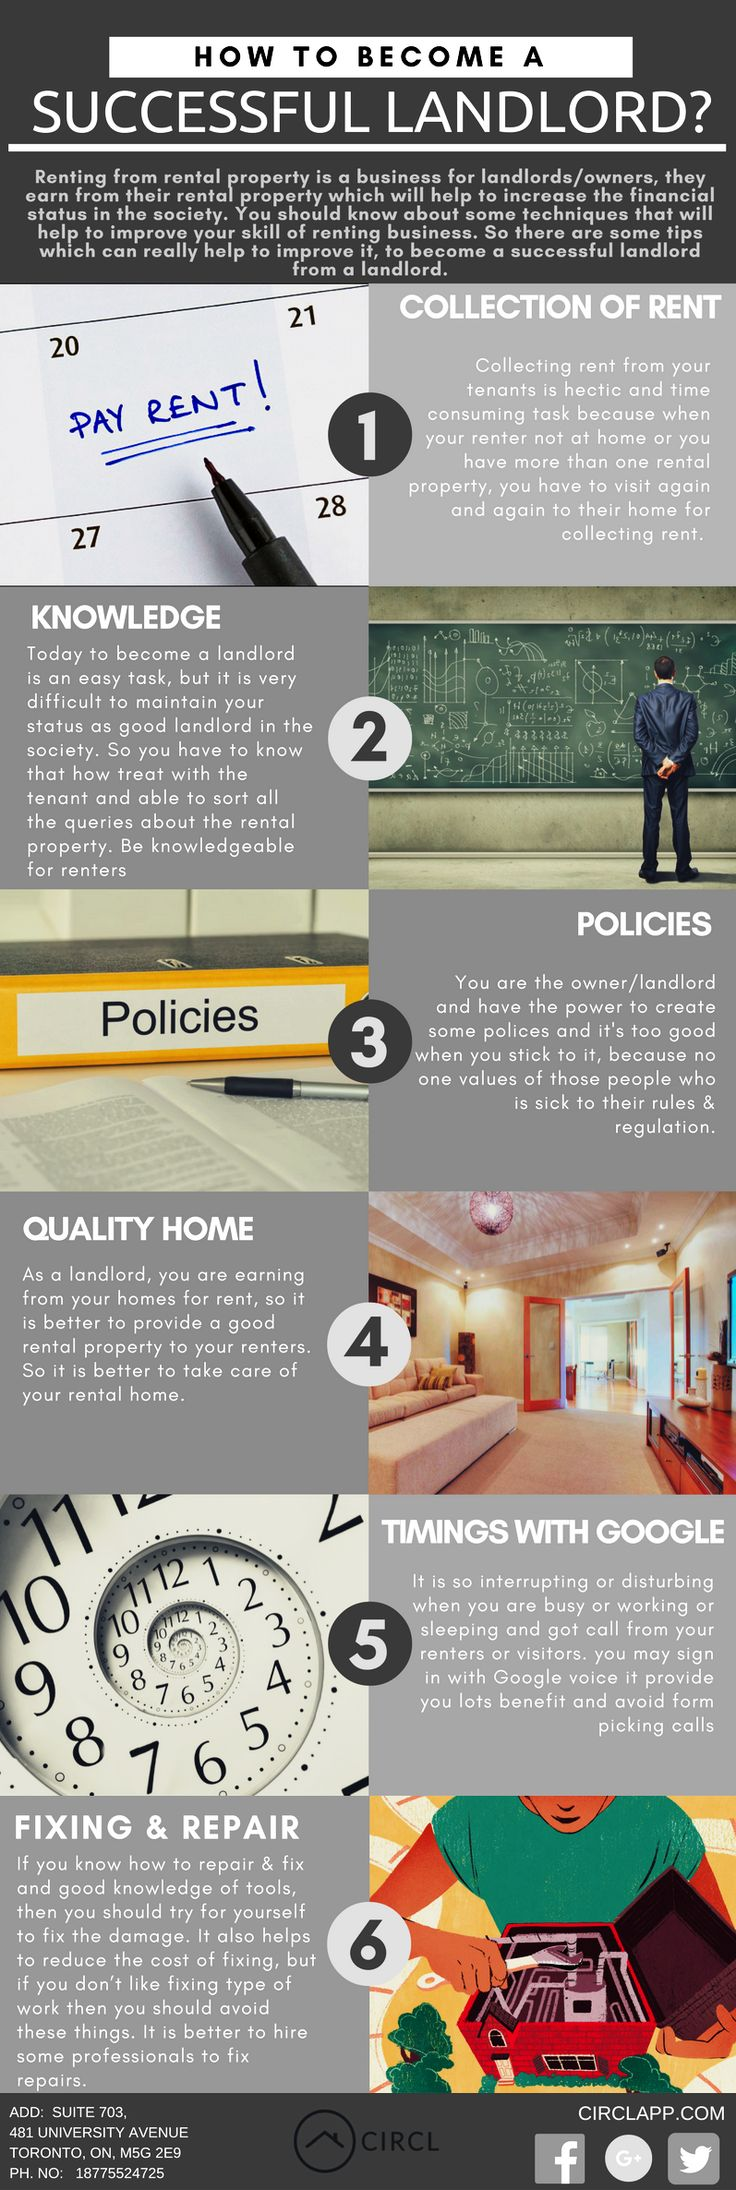 HOW TO BECOME A SUCCESSFUL LANDLORD? Renting from rental property is a business for landlords/owners, they earn from their rental property which will help to increase the financial status in the society. You should know about some techniques that will help to improve your skill of renting business. So there are some tips which can really help to improve it, to become a successful landlord from a landlord.